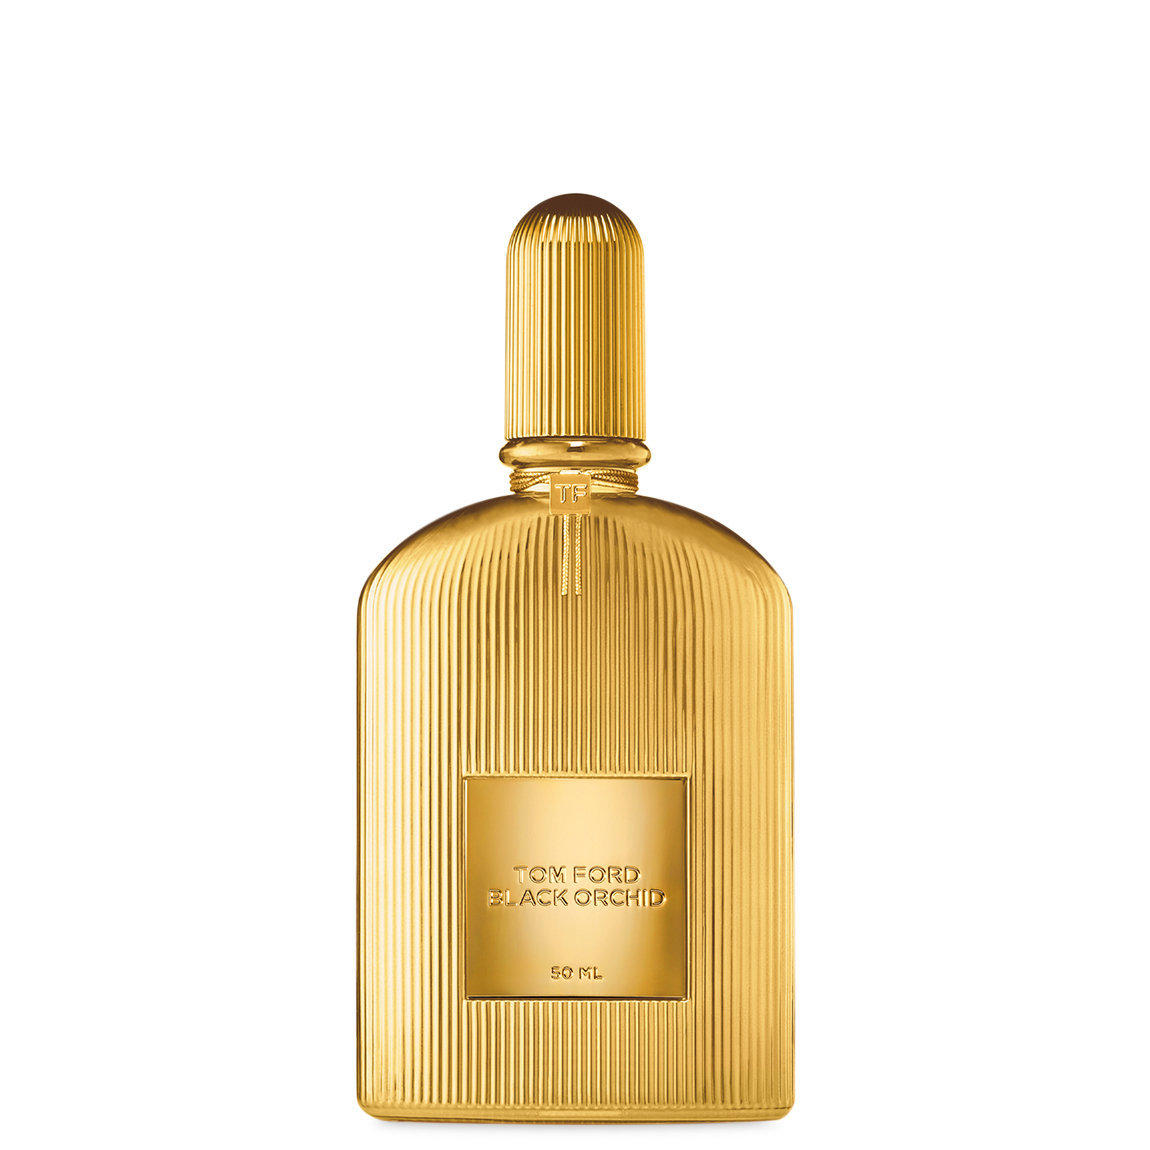 TOM FORD Black Orchid Parfum 50 ml alternative view 1 - product swatch.